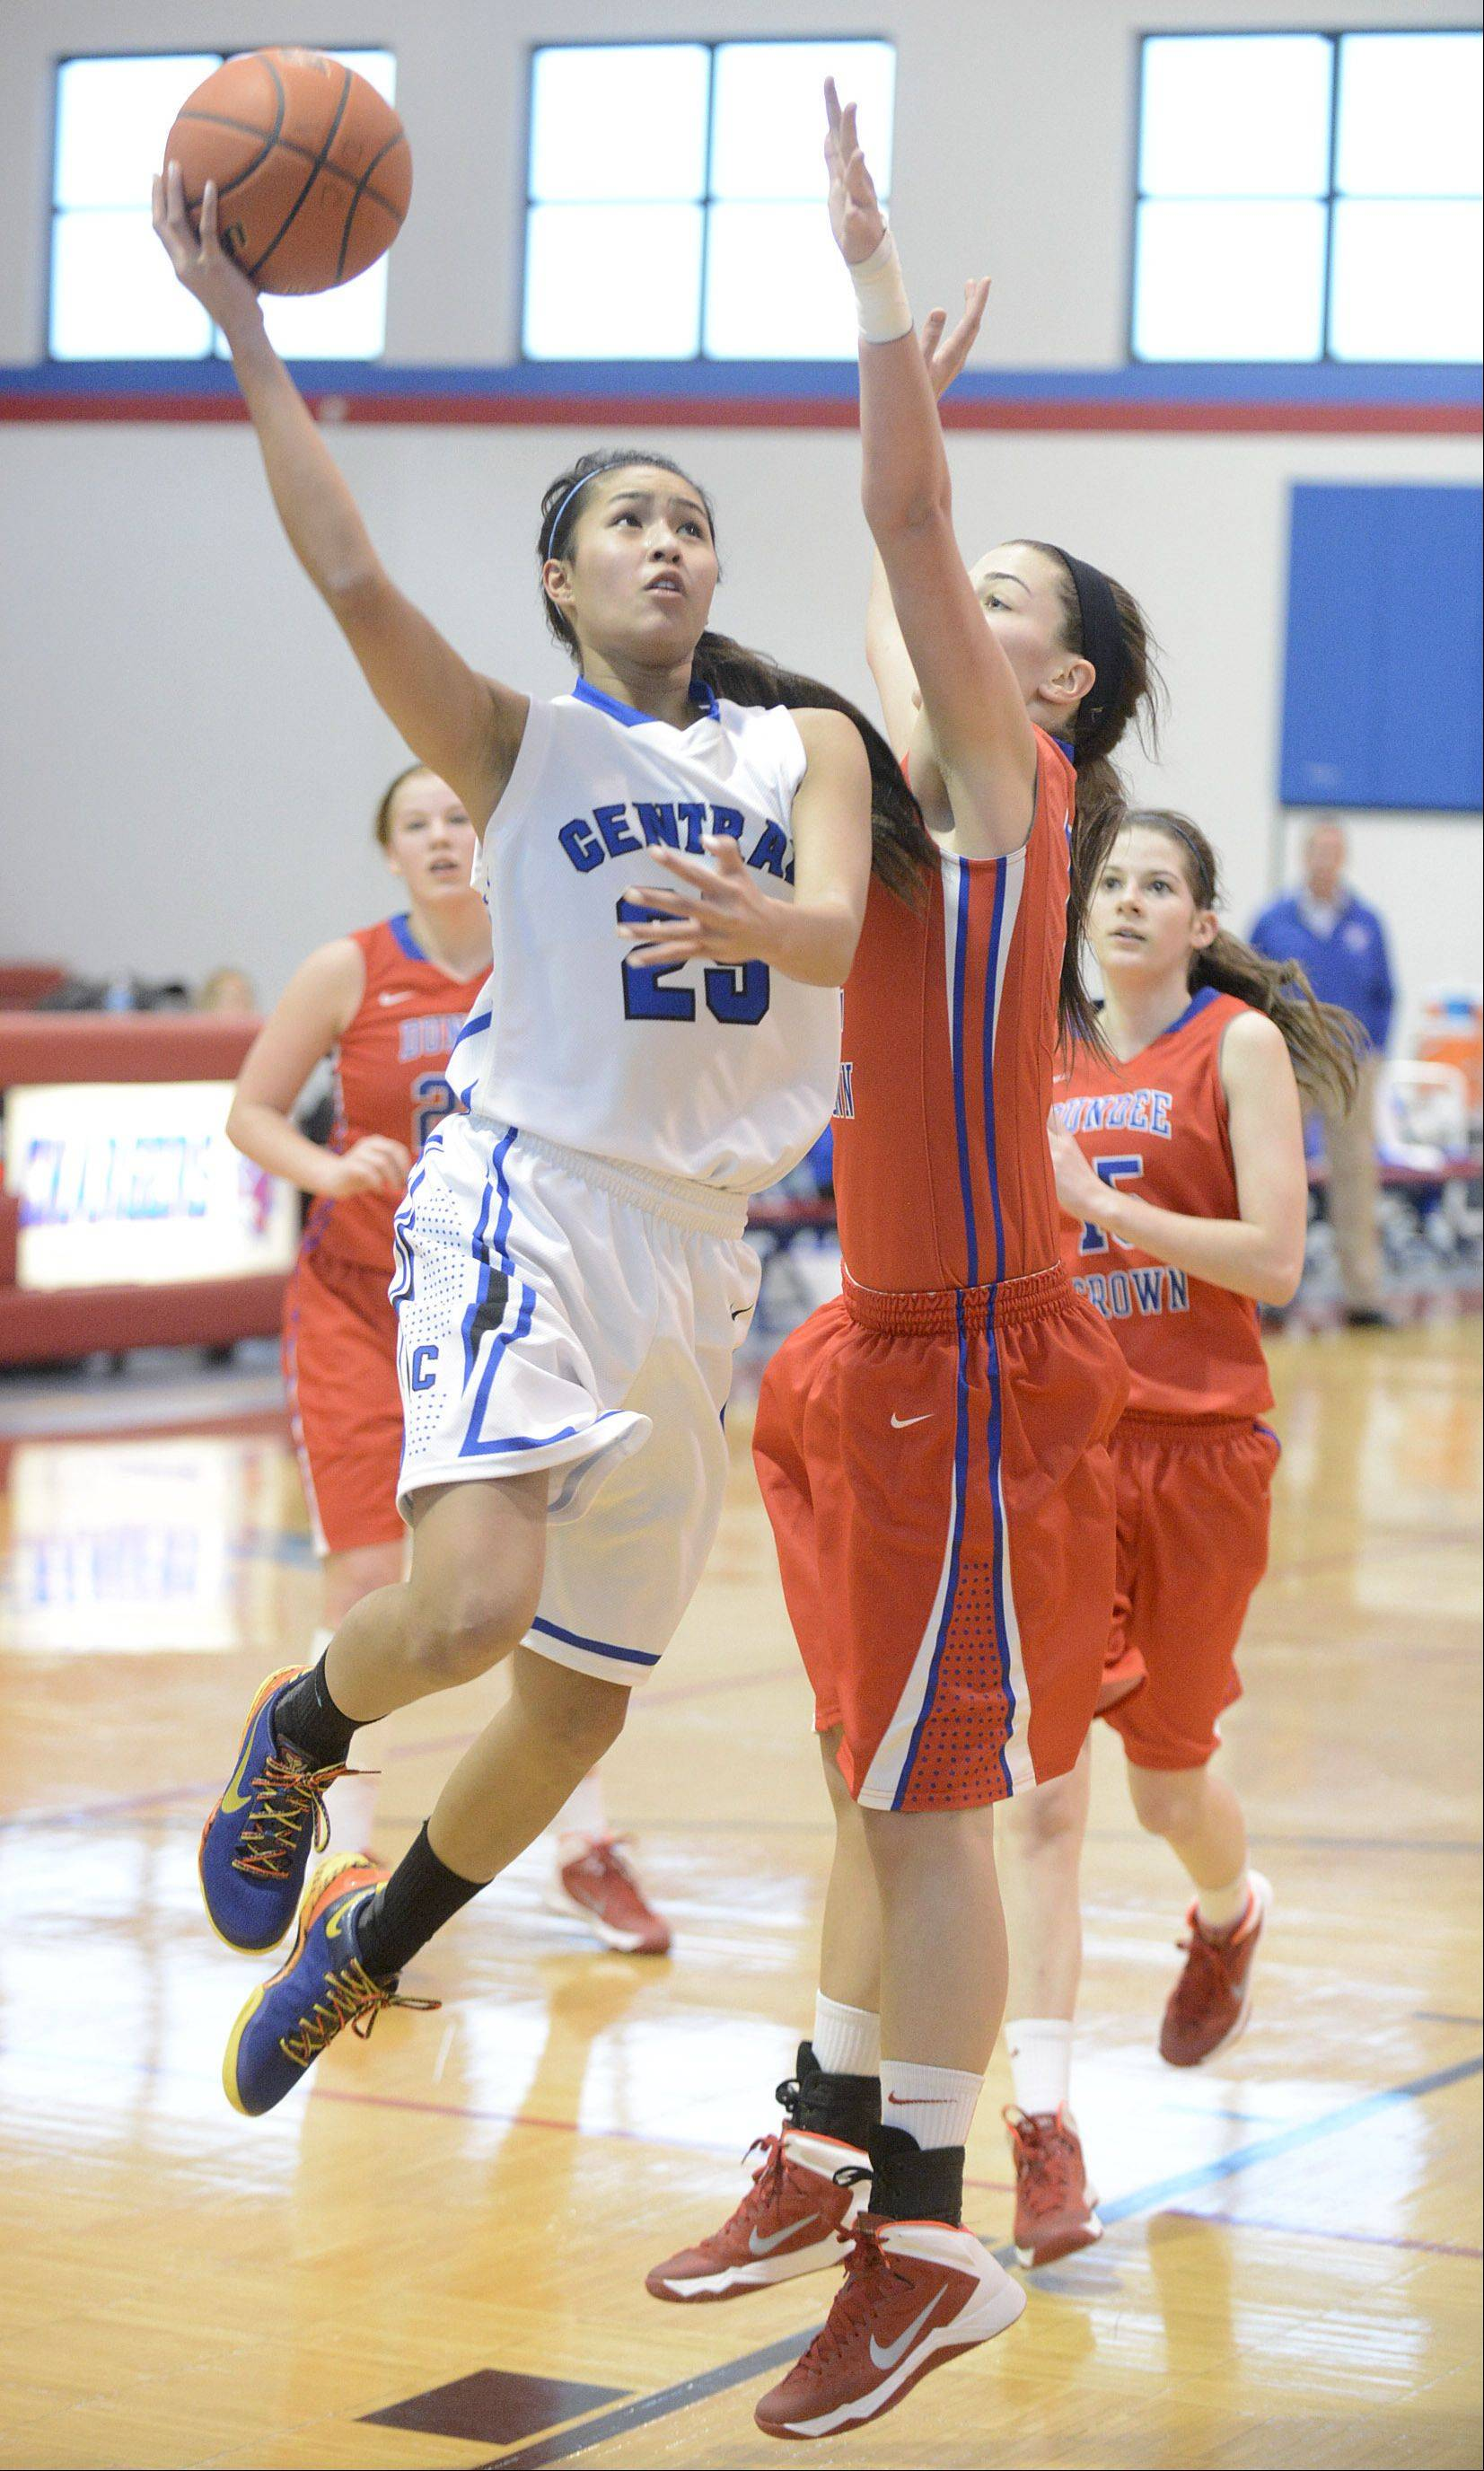 Burlington Central's Sam Cruz shoots over a block by Dundee-Crown's Lauren Lococo in the second quarter on Friday, December 27.